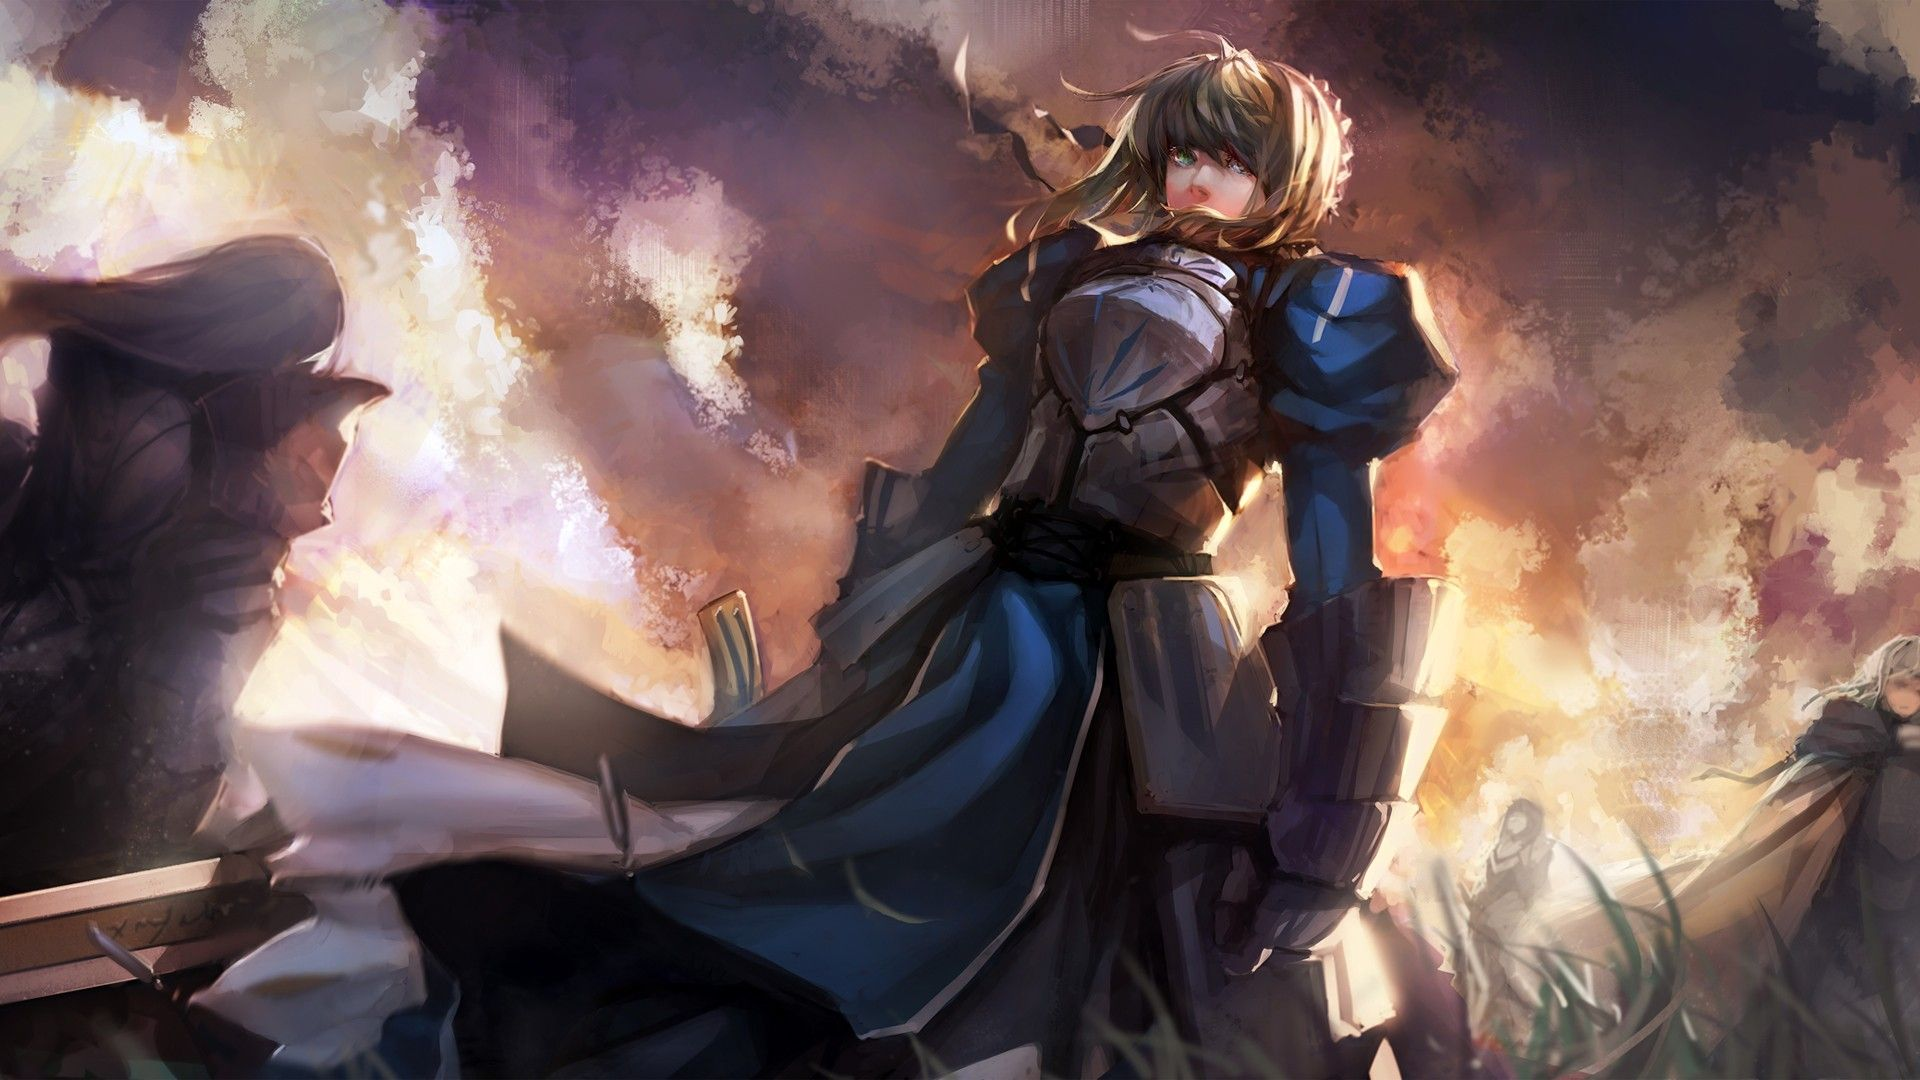 Fate/Stay Night, Saber Artwork Anime wallpaper